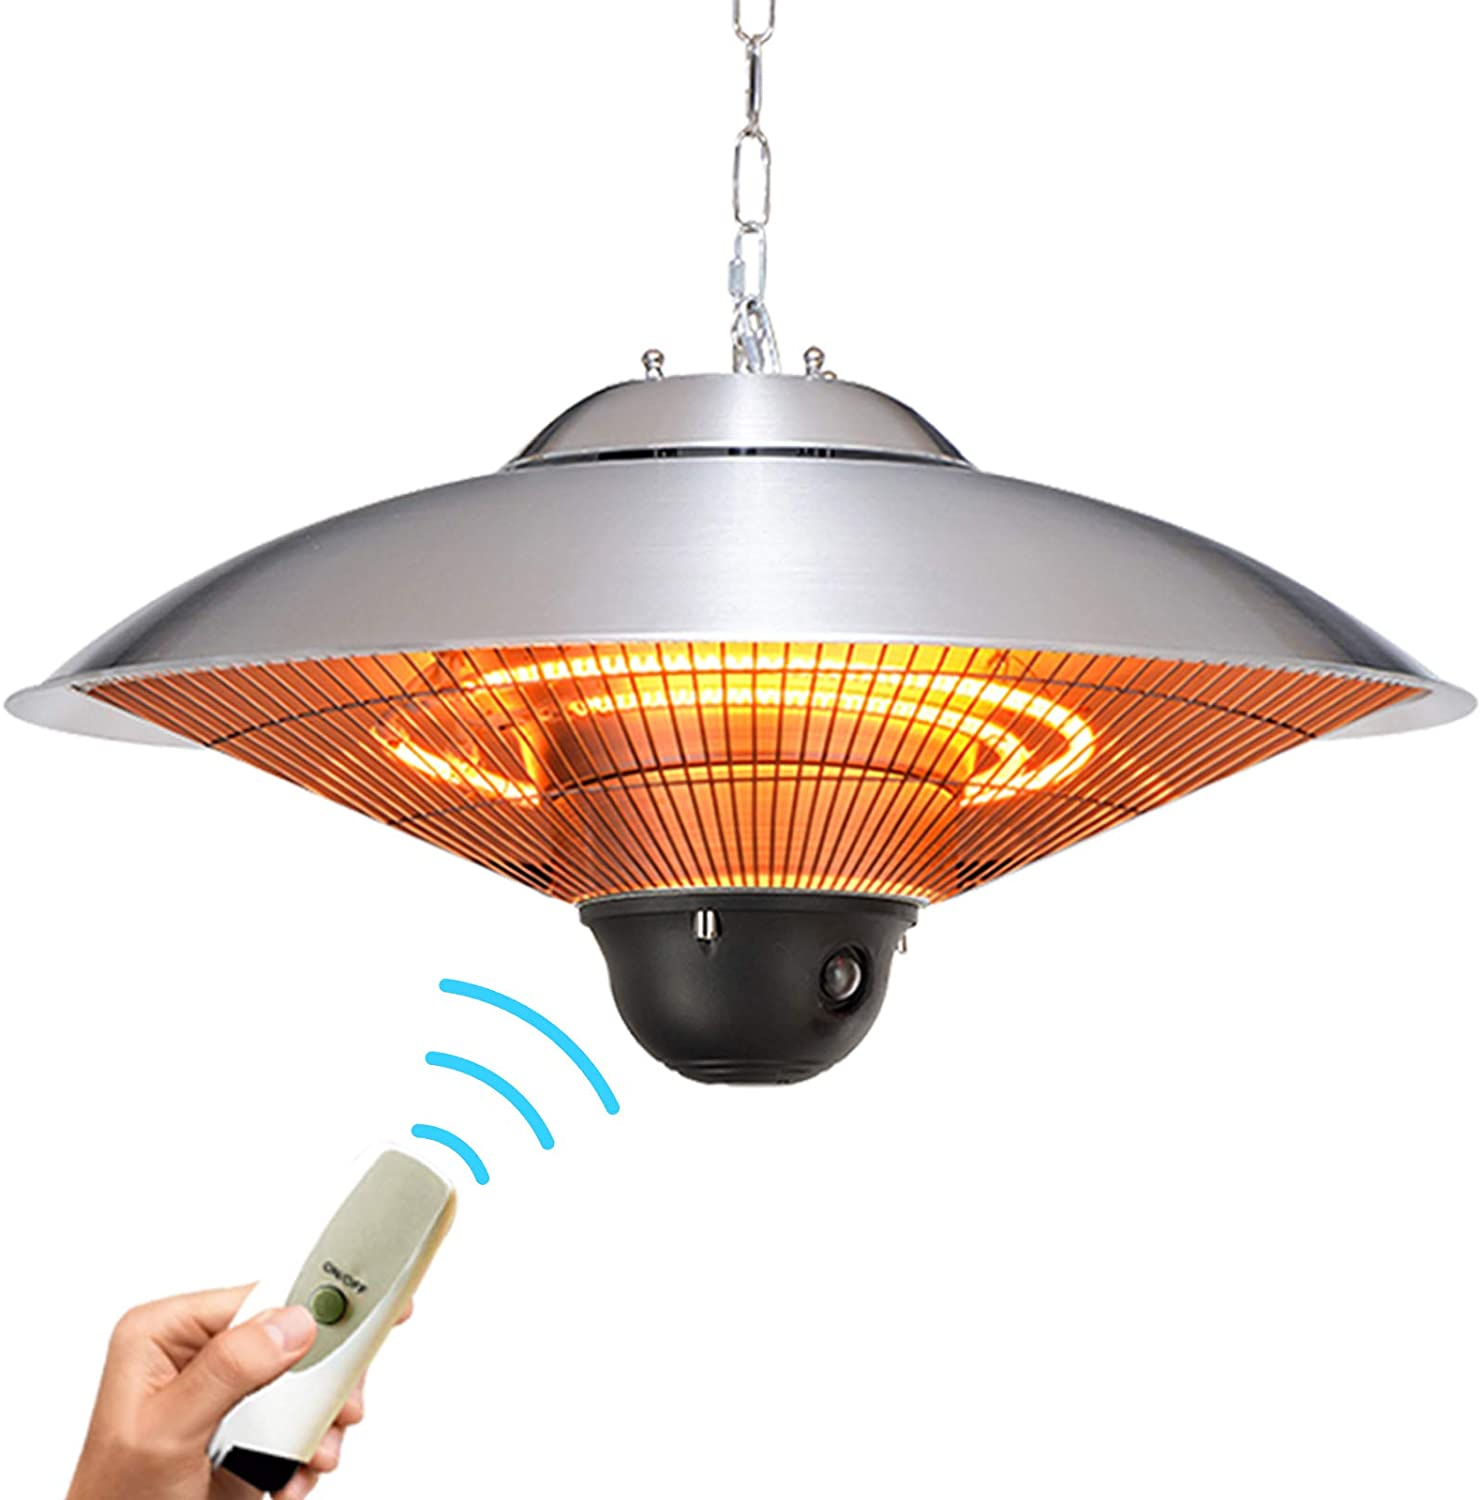 Electric Patio Heater Outdoor Ceiling He 1500w San Diego Mall free 23inLarge -